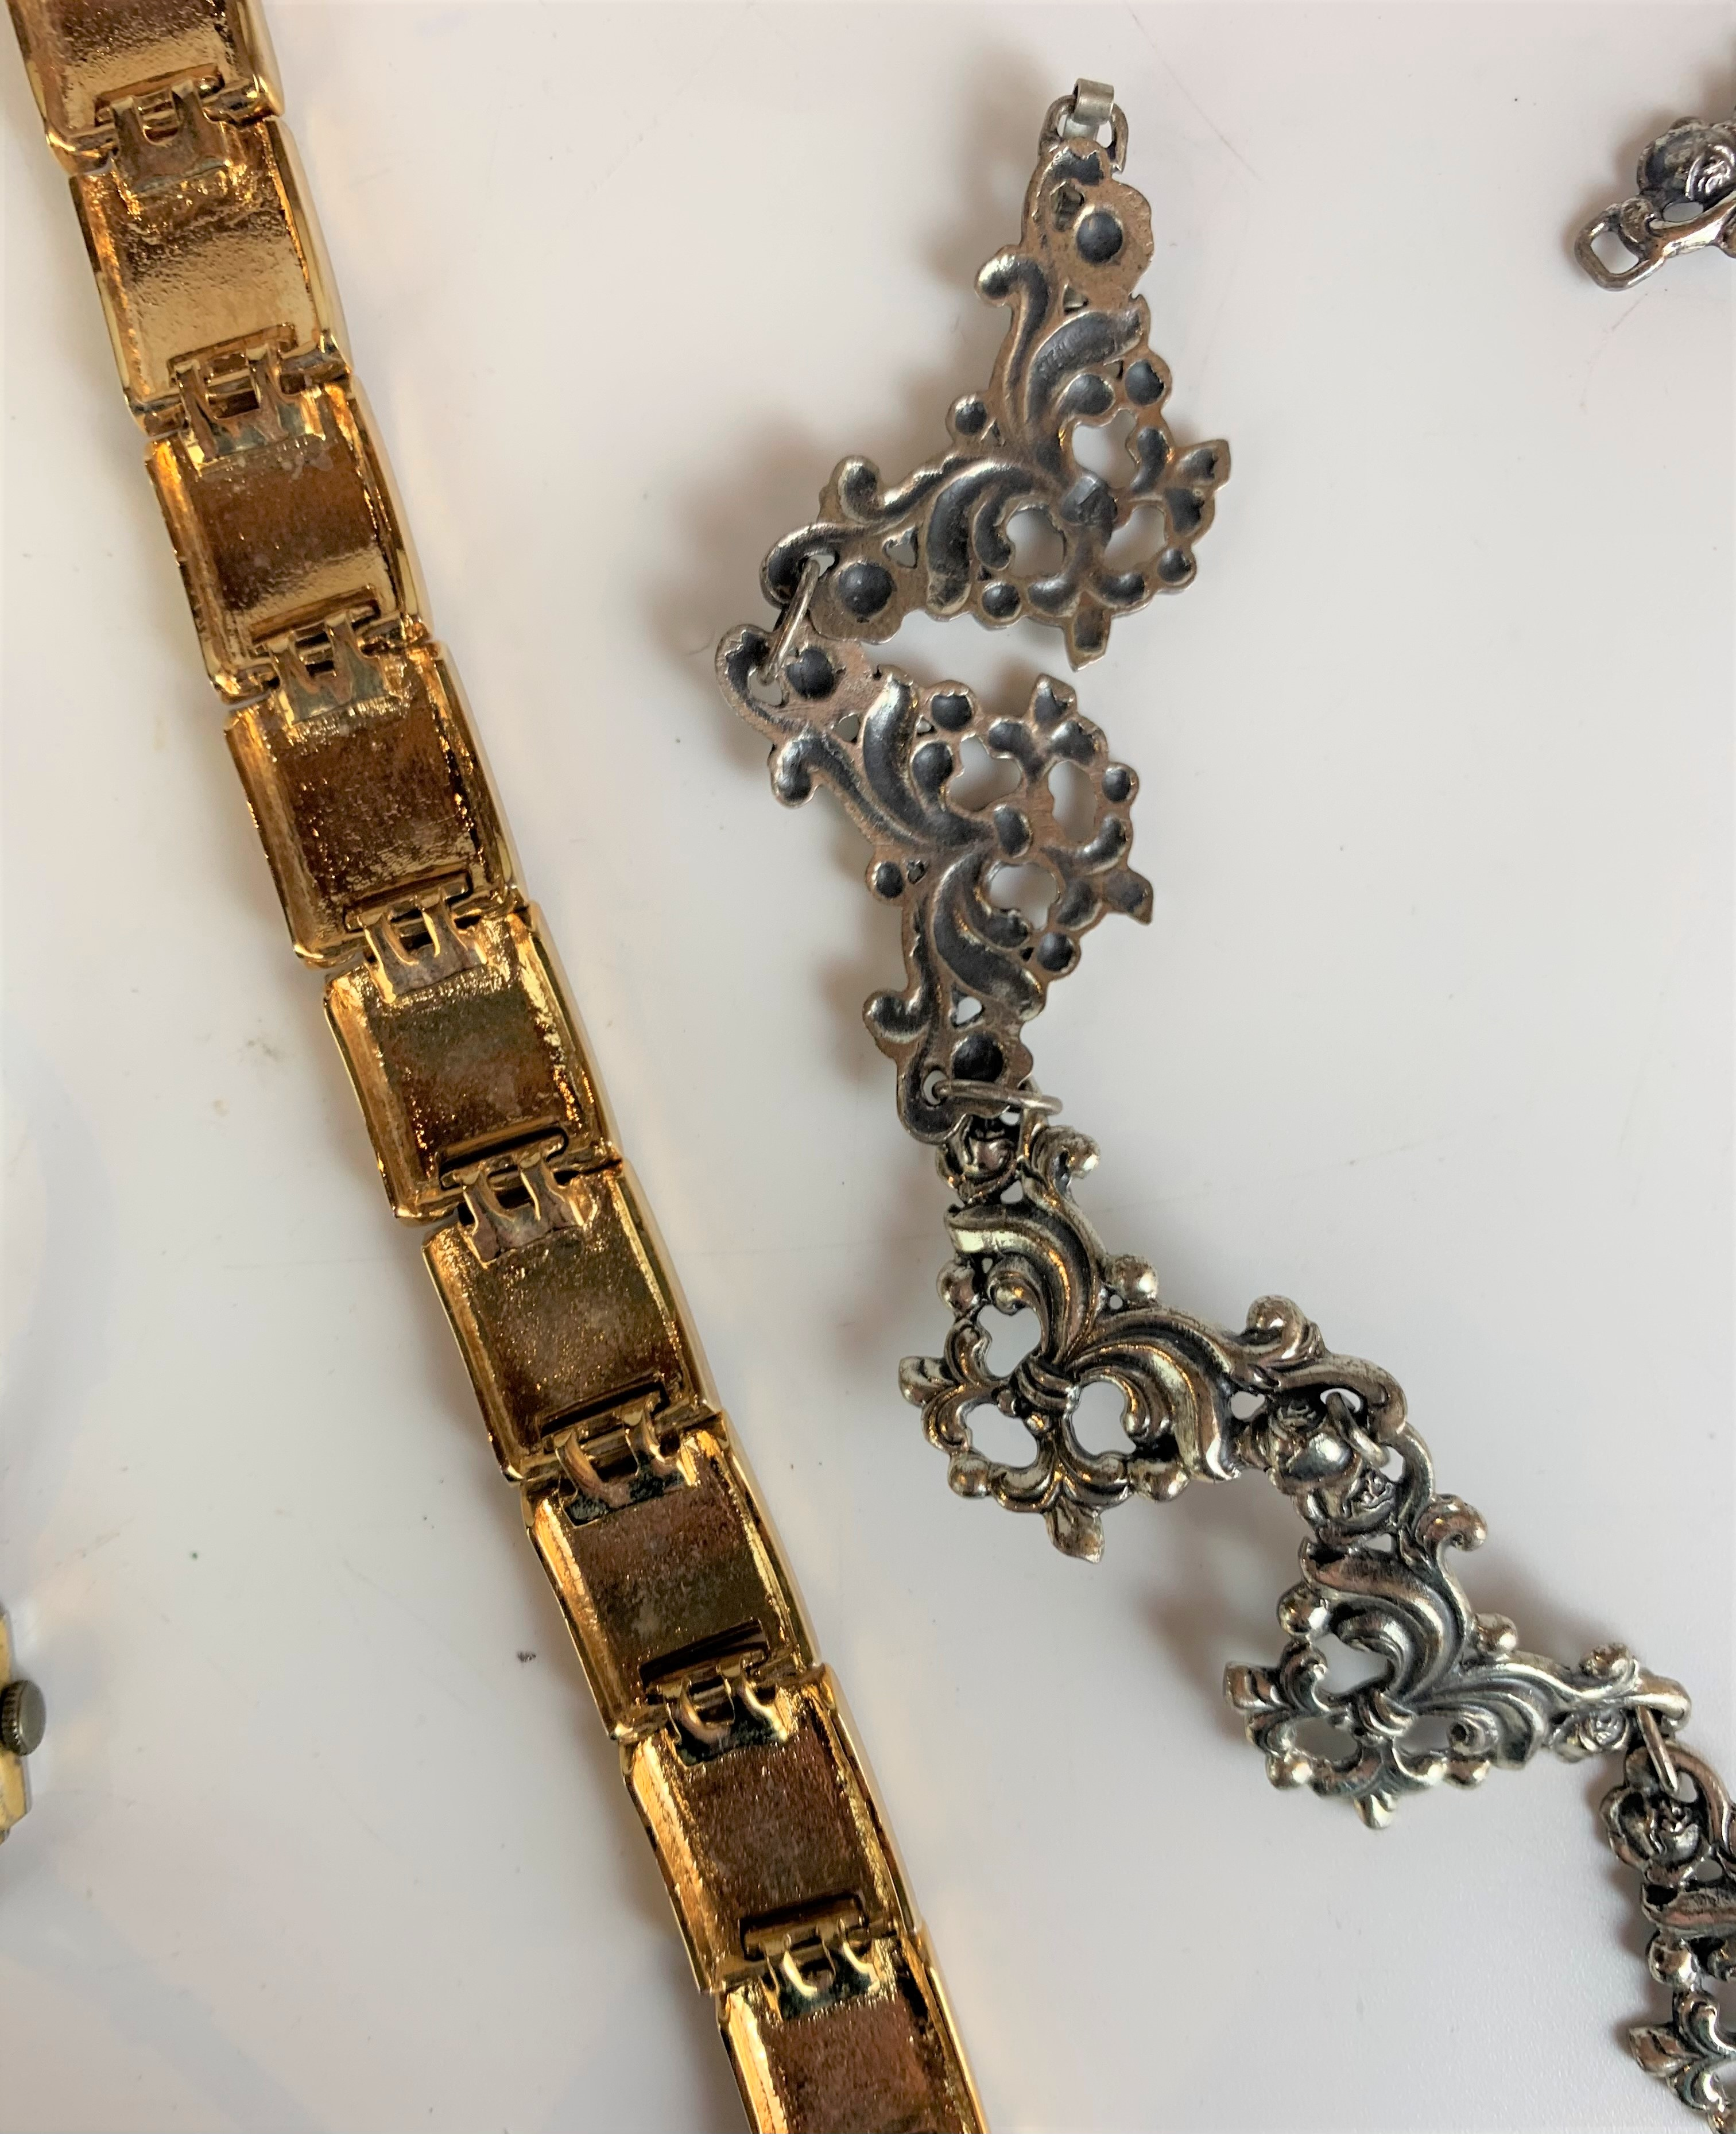 Dress plated necklace, enamel bracelet and Arnex ladies watch - Image 4 of 5